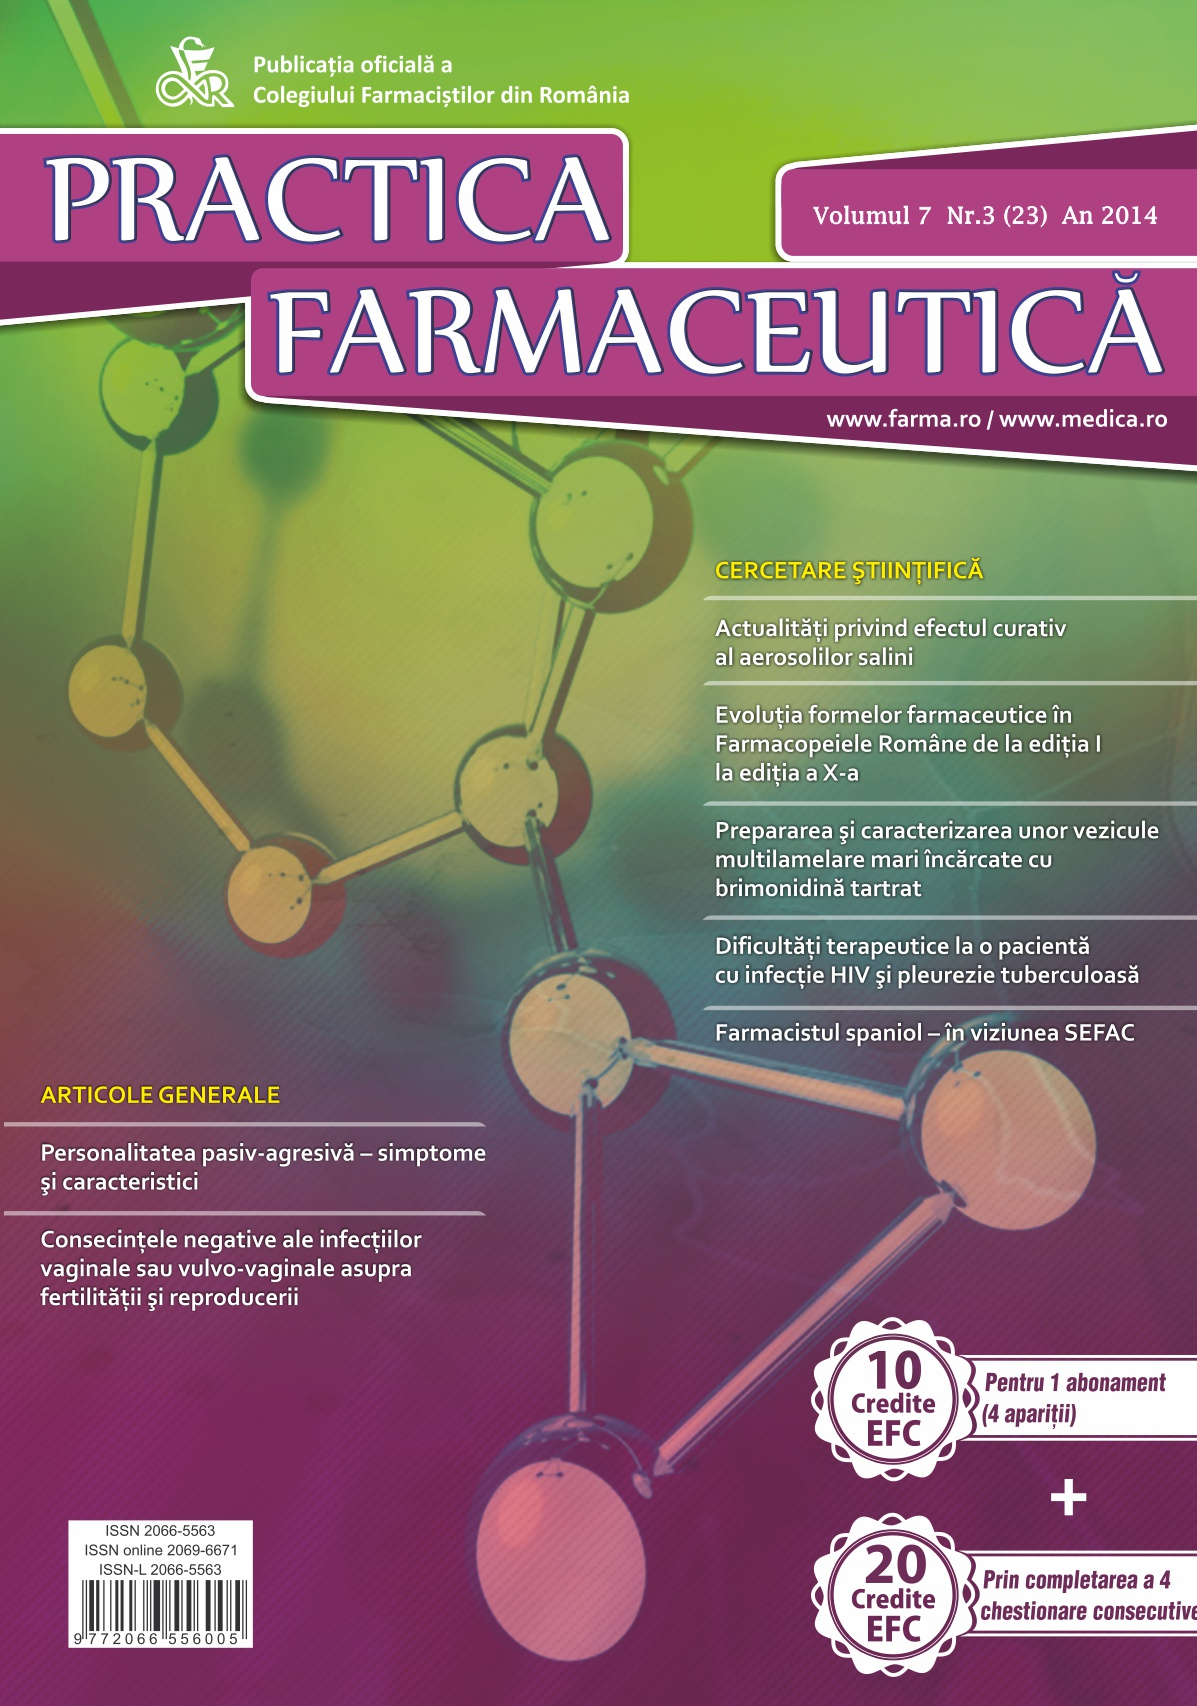 Revista Practica Farmaceutica, Vol. 7, Nr. 3 (23), 2014